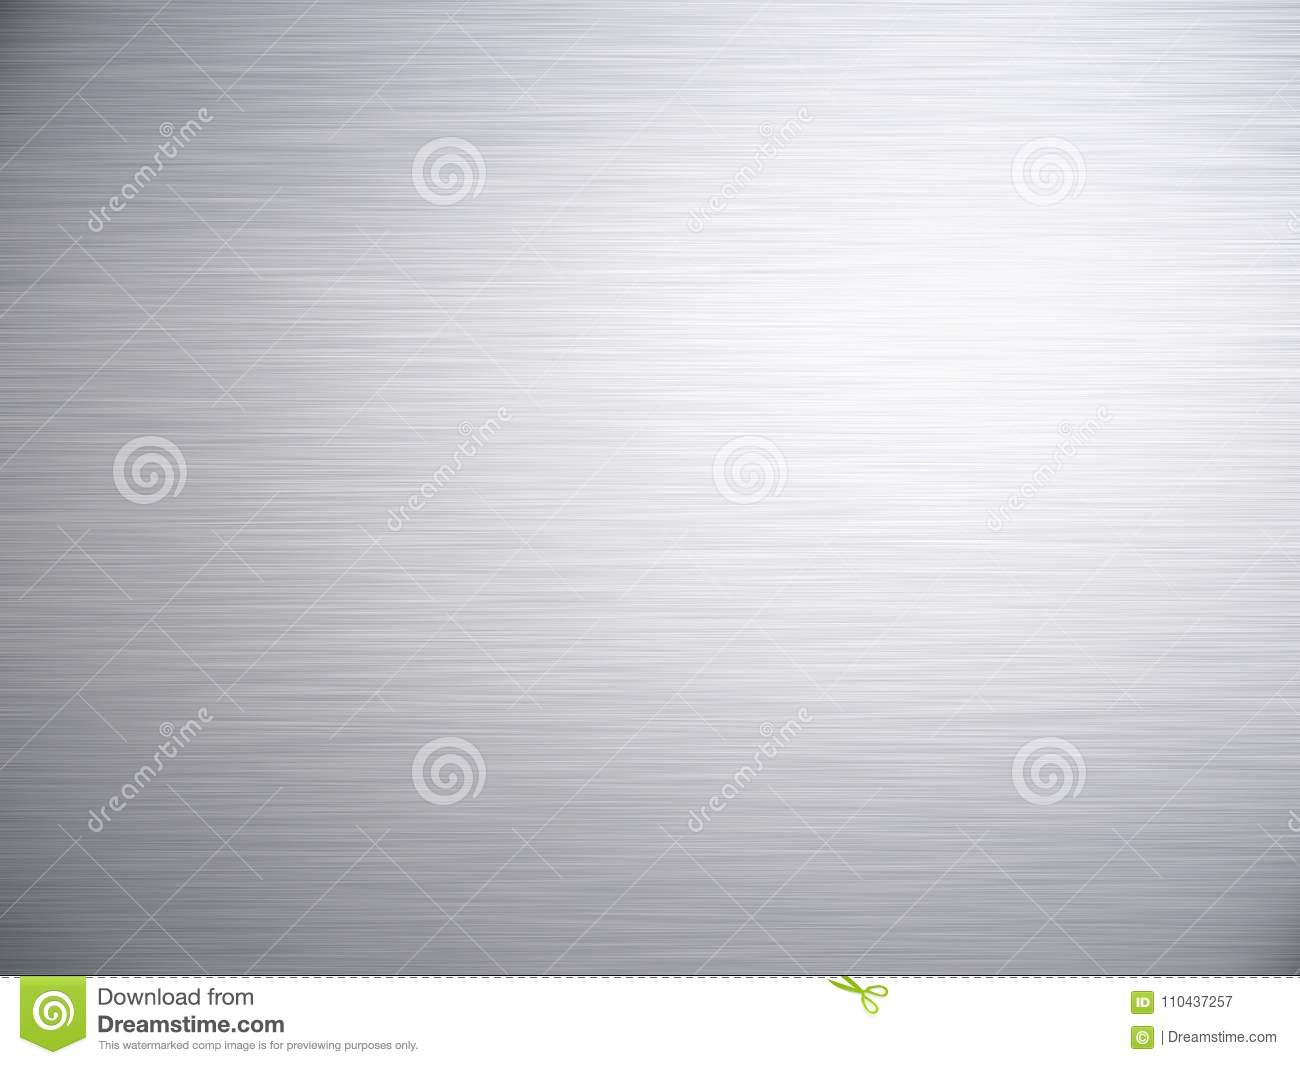 Brushed Steel Aluminium Metal Background Texture